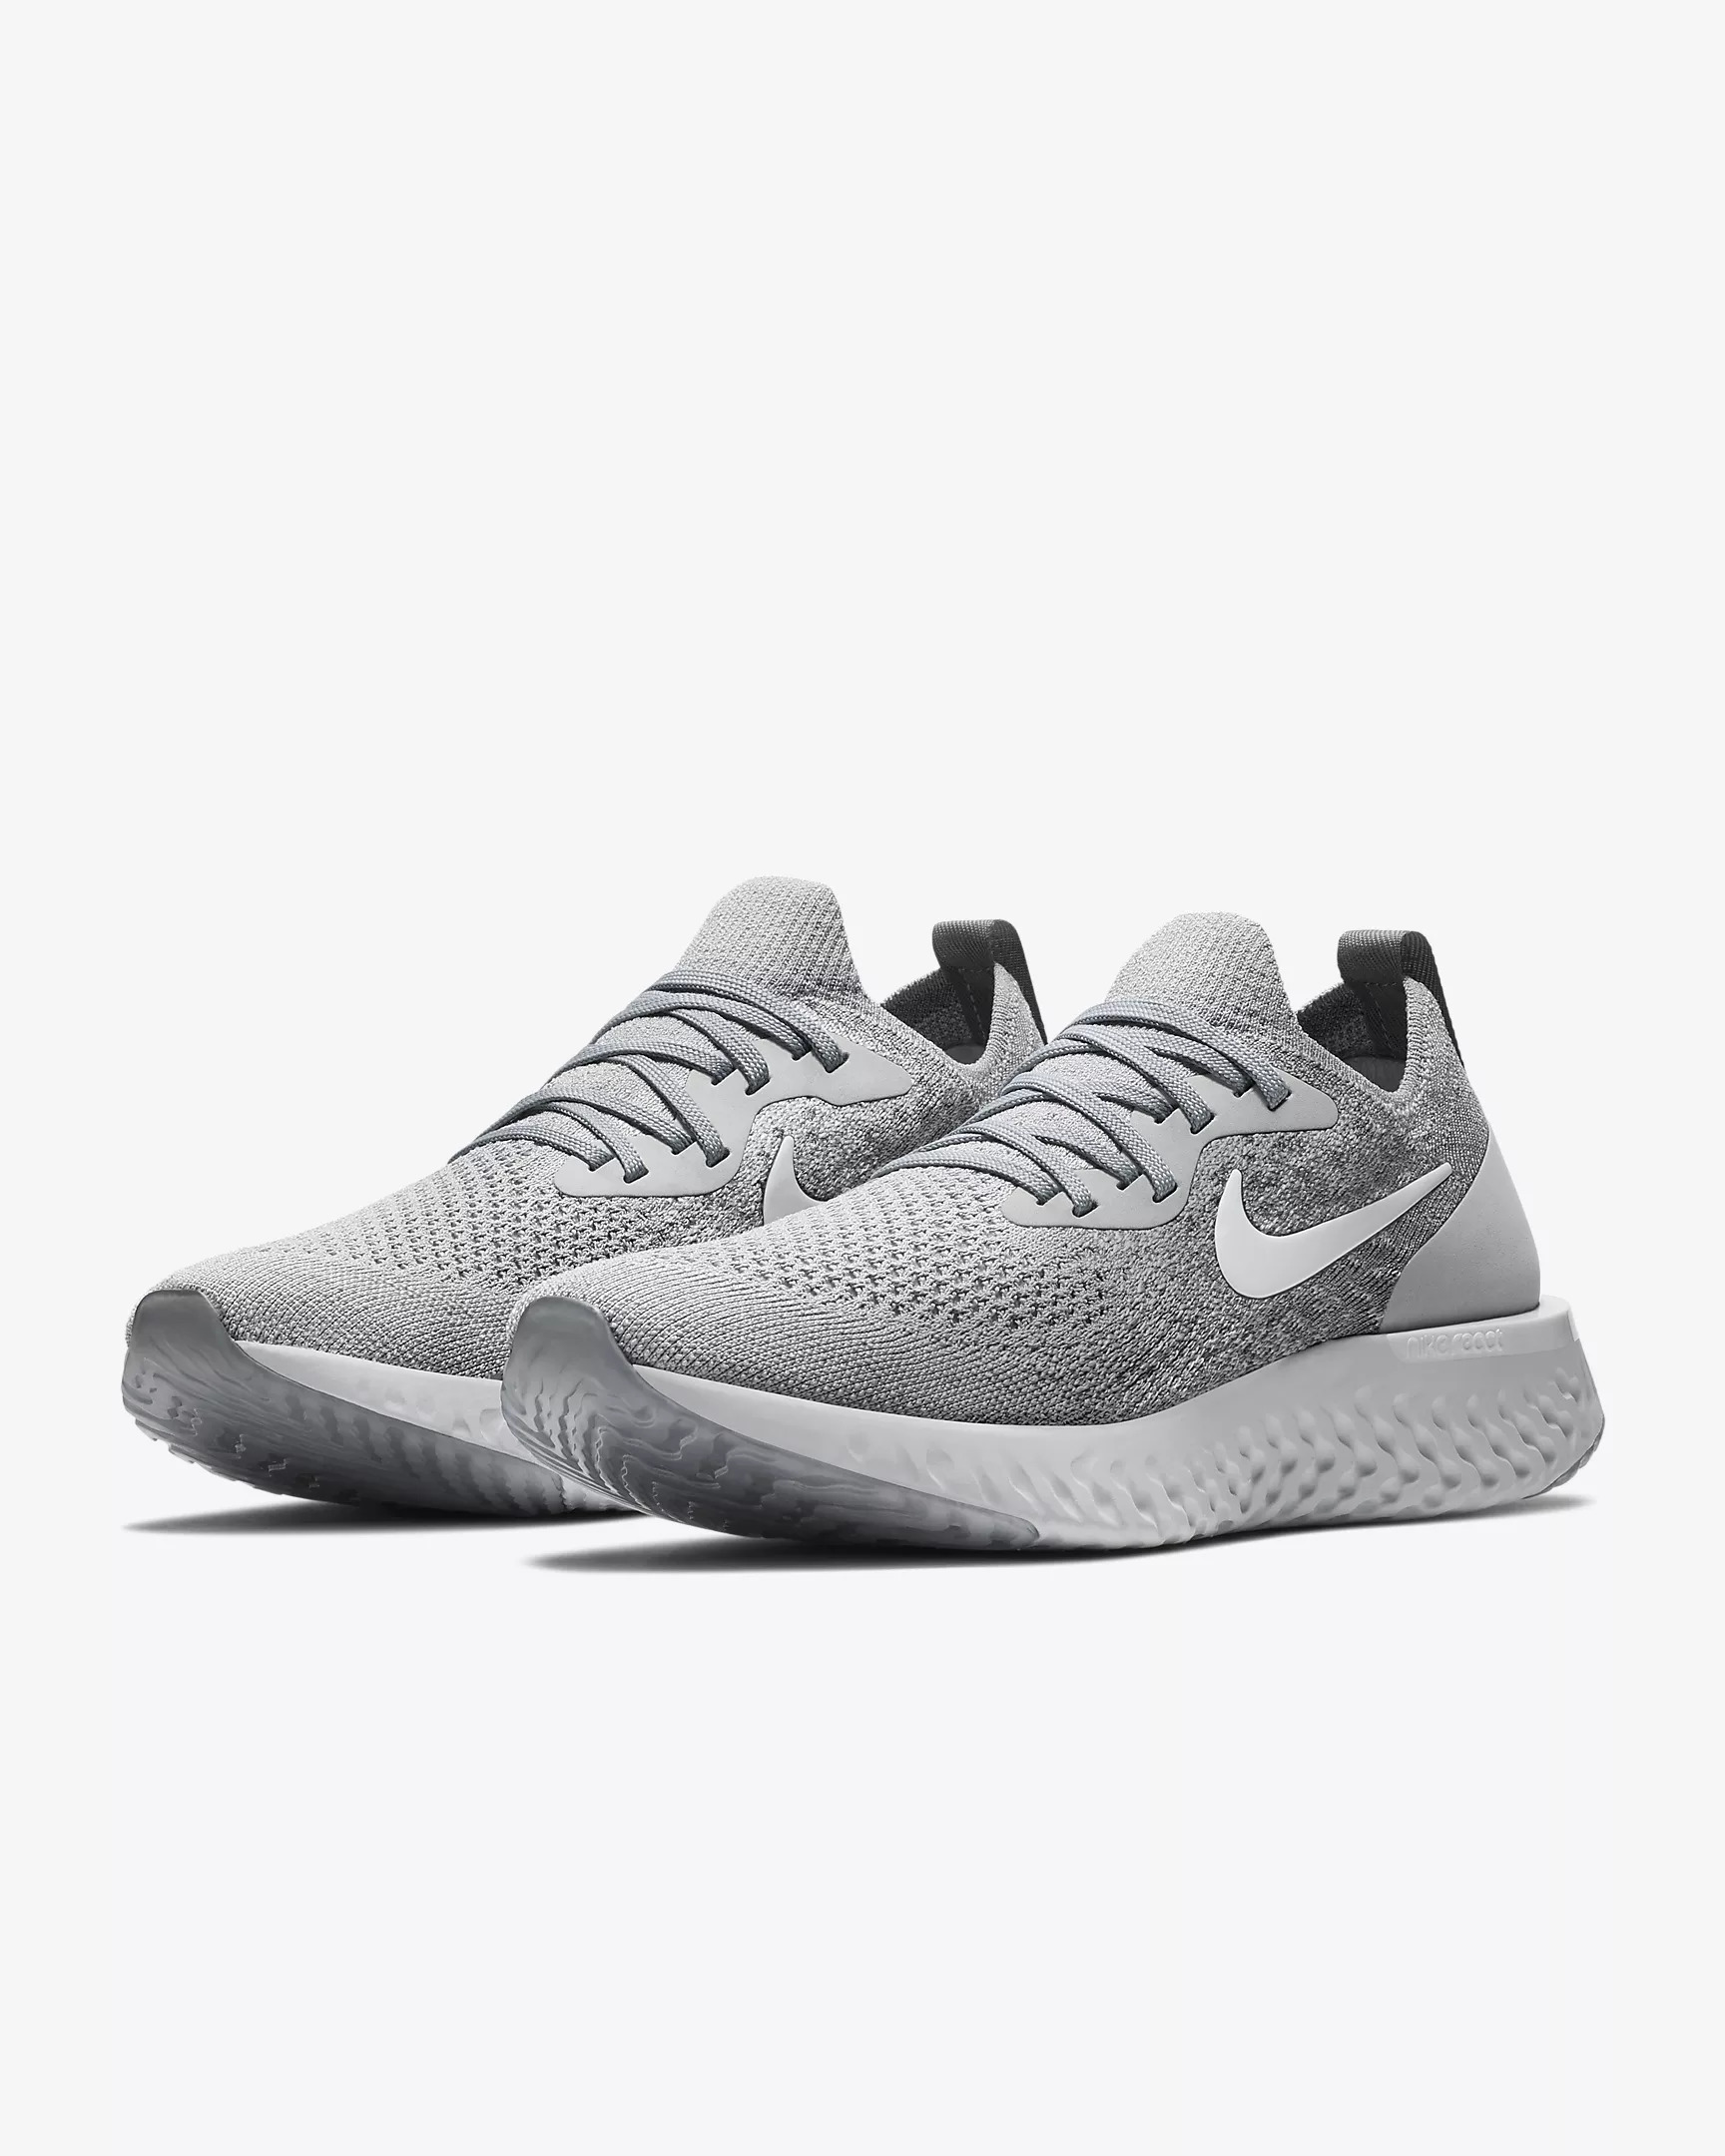 e7497907742f6 Feast Your Eyes on 3 New Nike Epic React Flyknit Colorways